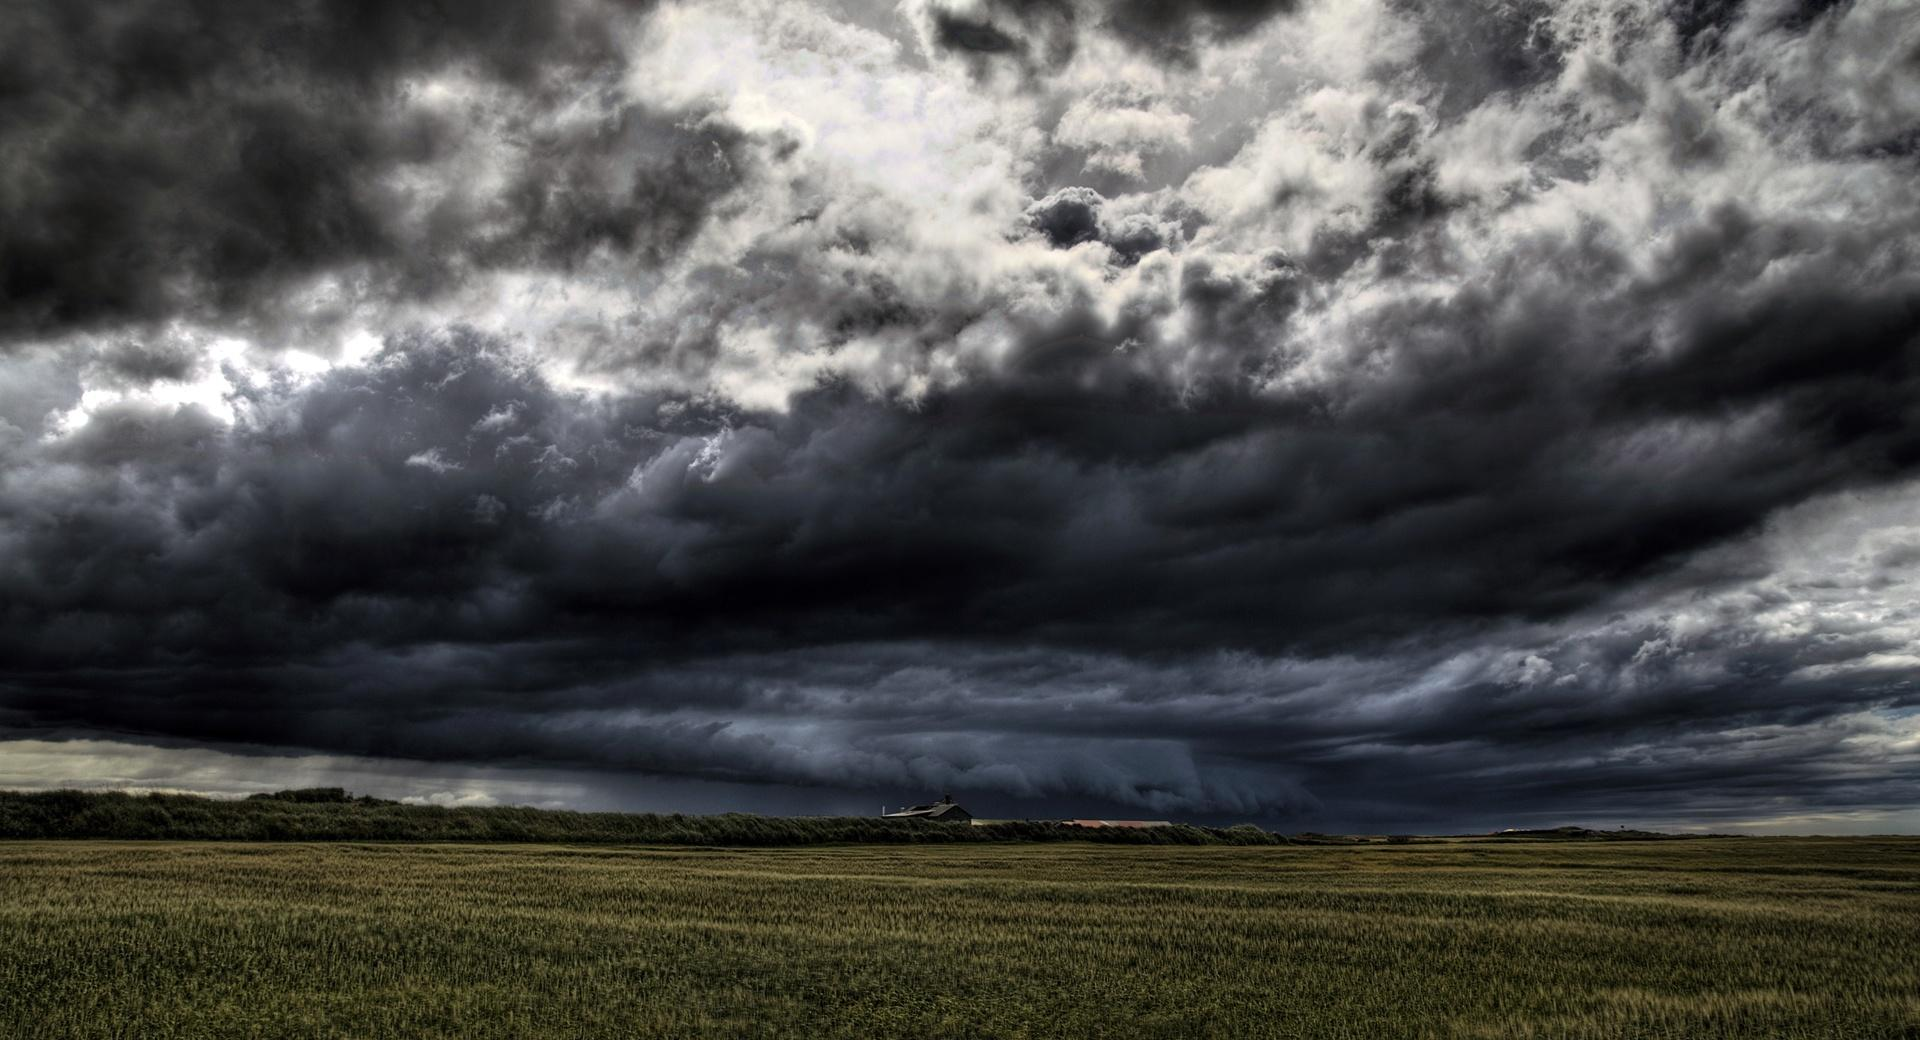 Stormy Sky wallpapers HD quality